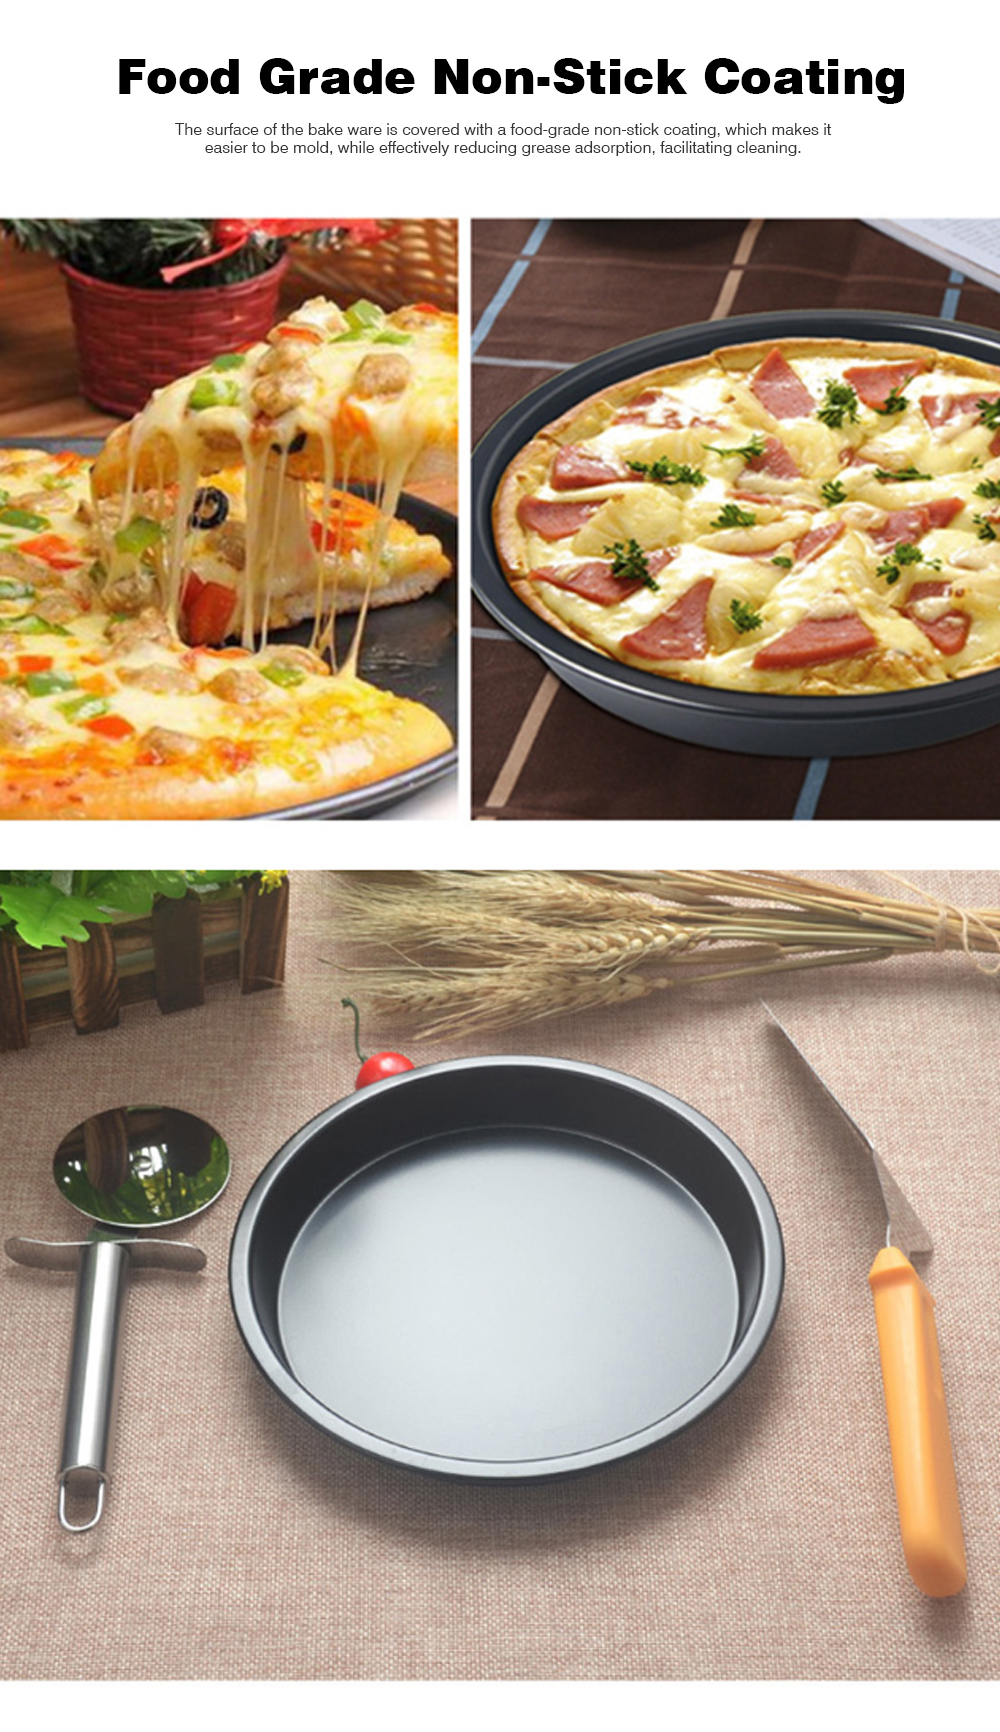 Thick Round 6 Inch Carbon Steel Non-stick PIZZA Baking Tray for DIY Household Baking Tray Baking Mold Oven 3